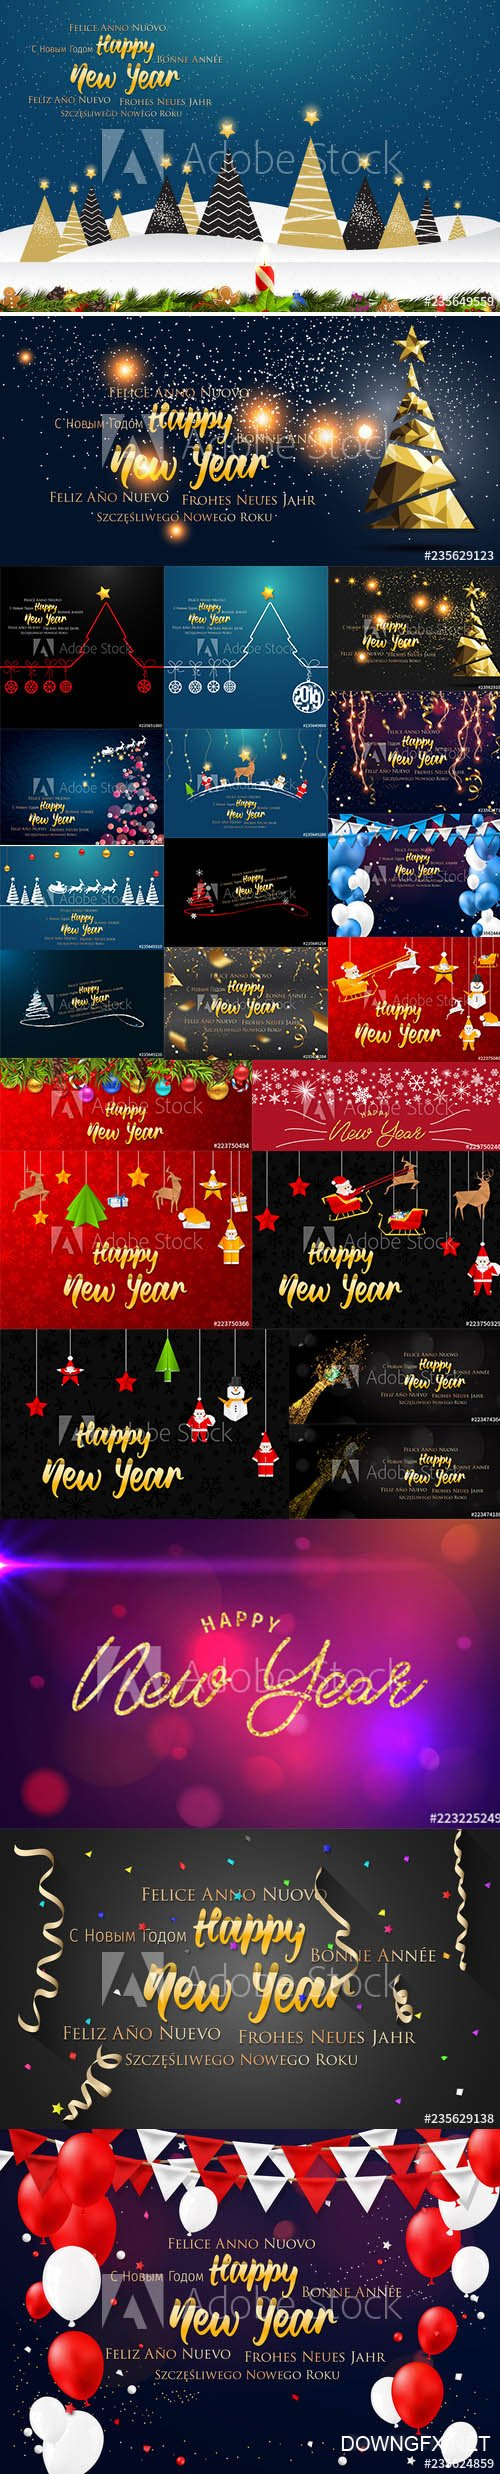 Happy New Year greeting card and Background with Christmas decoration AI